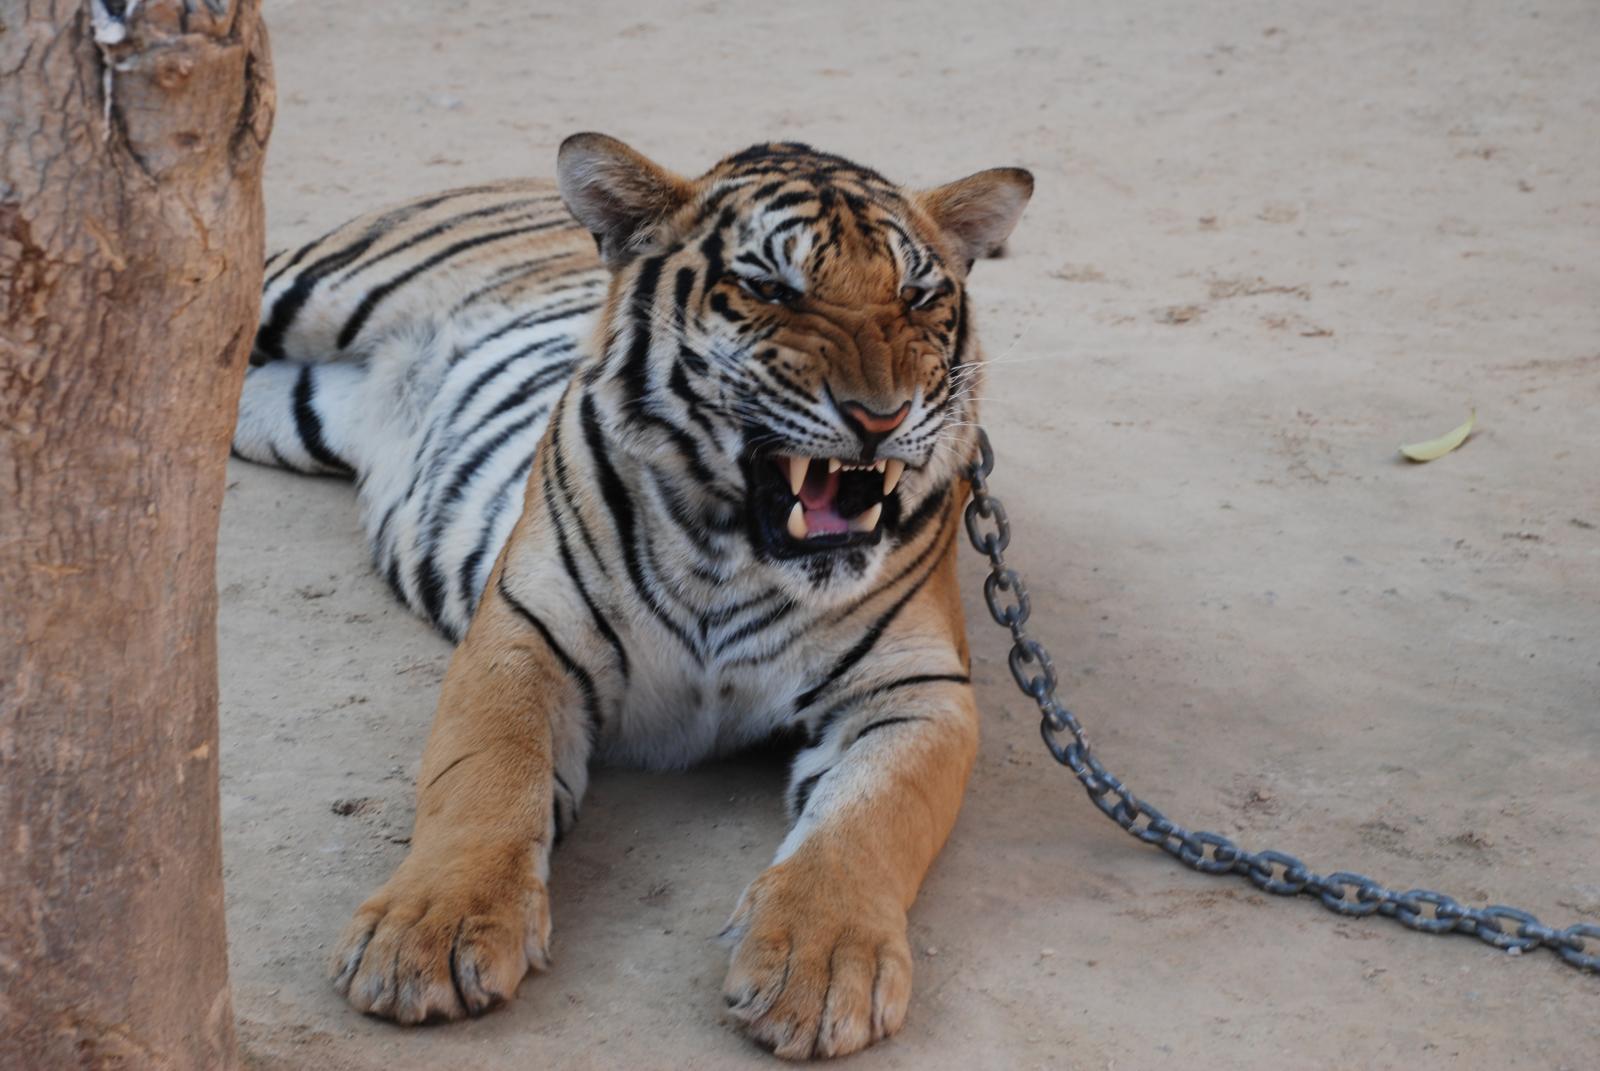 BREAKING NEWS: Thai Government Seizes All Tigers From Tiger Temple